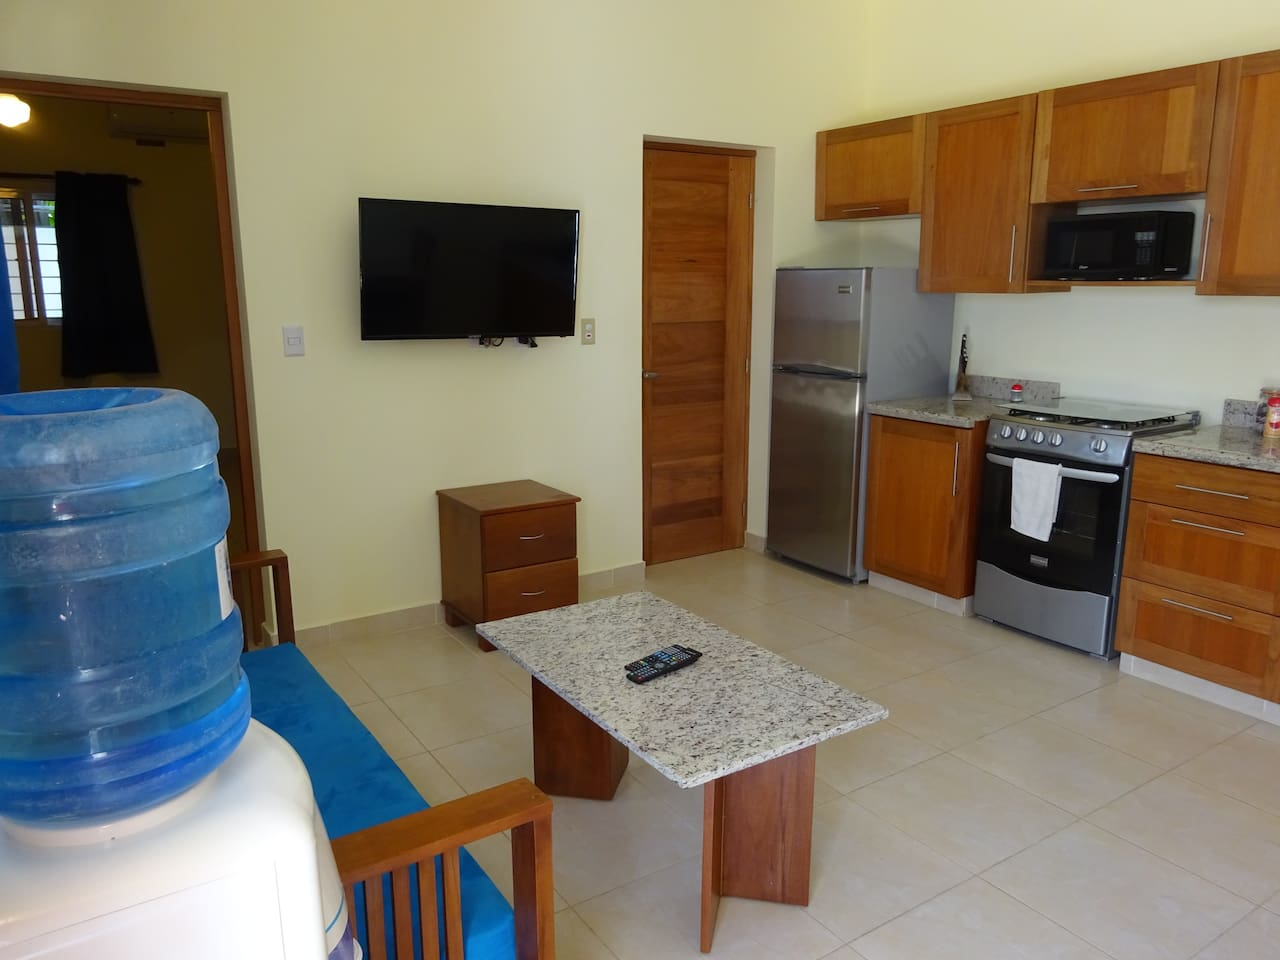 The kitchen is fully equipped with everything you need to cook a meal or make a tropical drink. The door that is shut is for a half bath room.